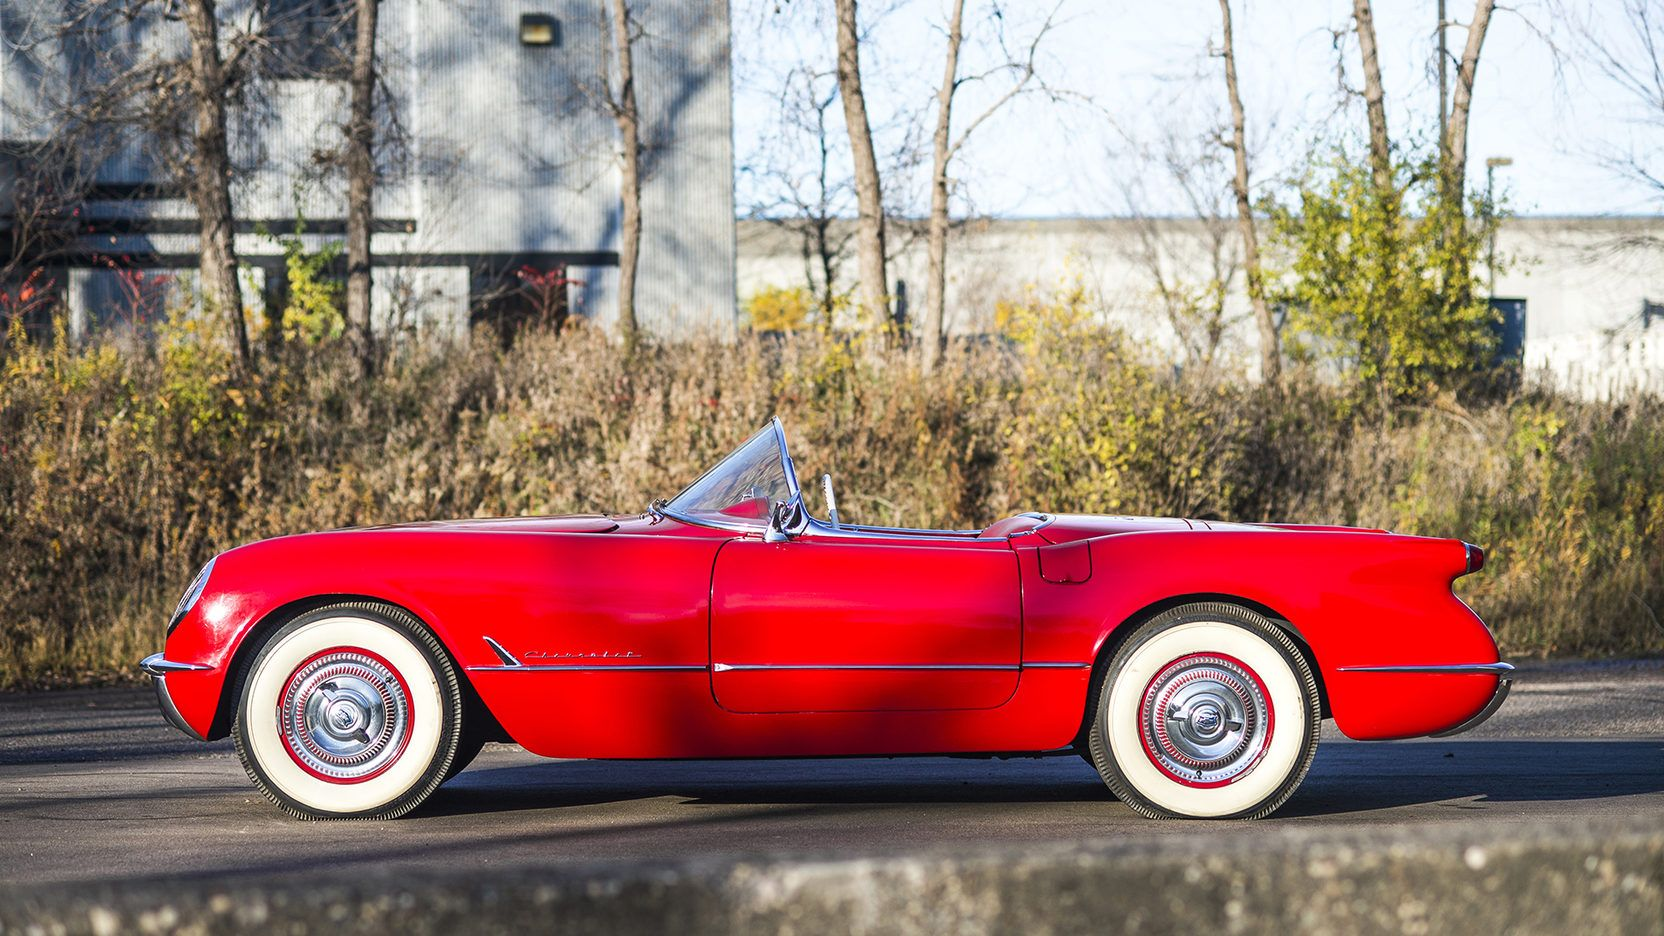 This 1954 convertible is sitting on BF Goodrich Silvertown Wide Whitewall tires and has the full size spinner wheel covers. What a sharp Corvette!